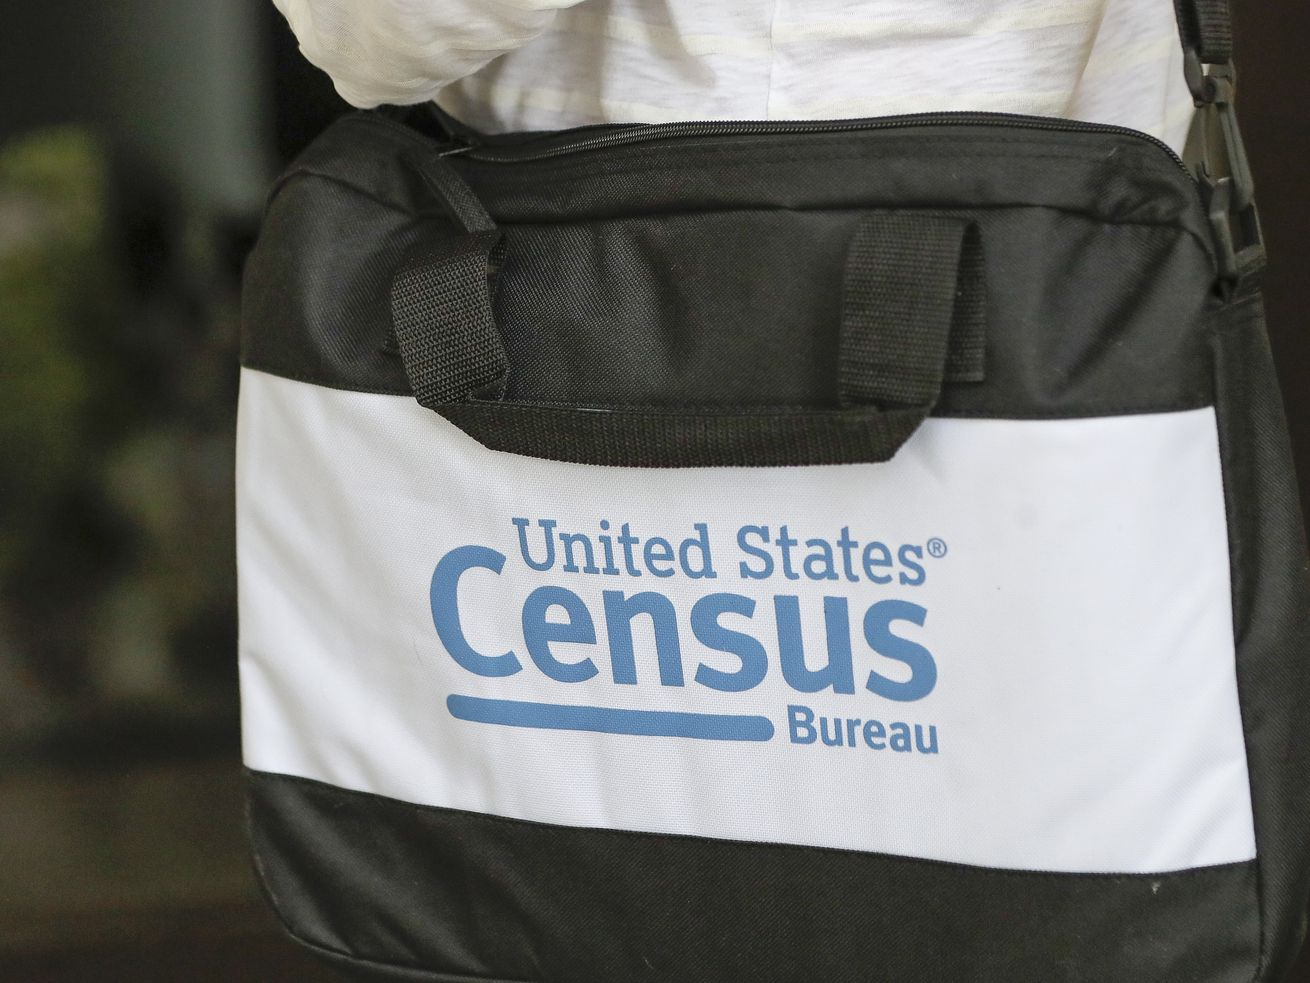 A preliminary injunction forcing the U.S. Census Bureau to extend its deadline back to October 31 has local groups unsure if the Trump administration will obey the order.